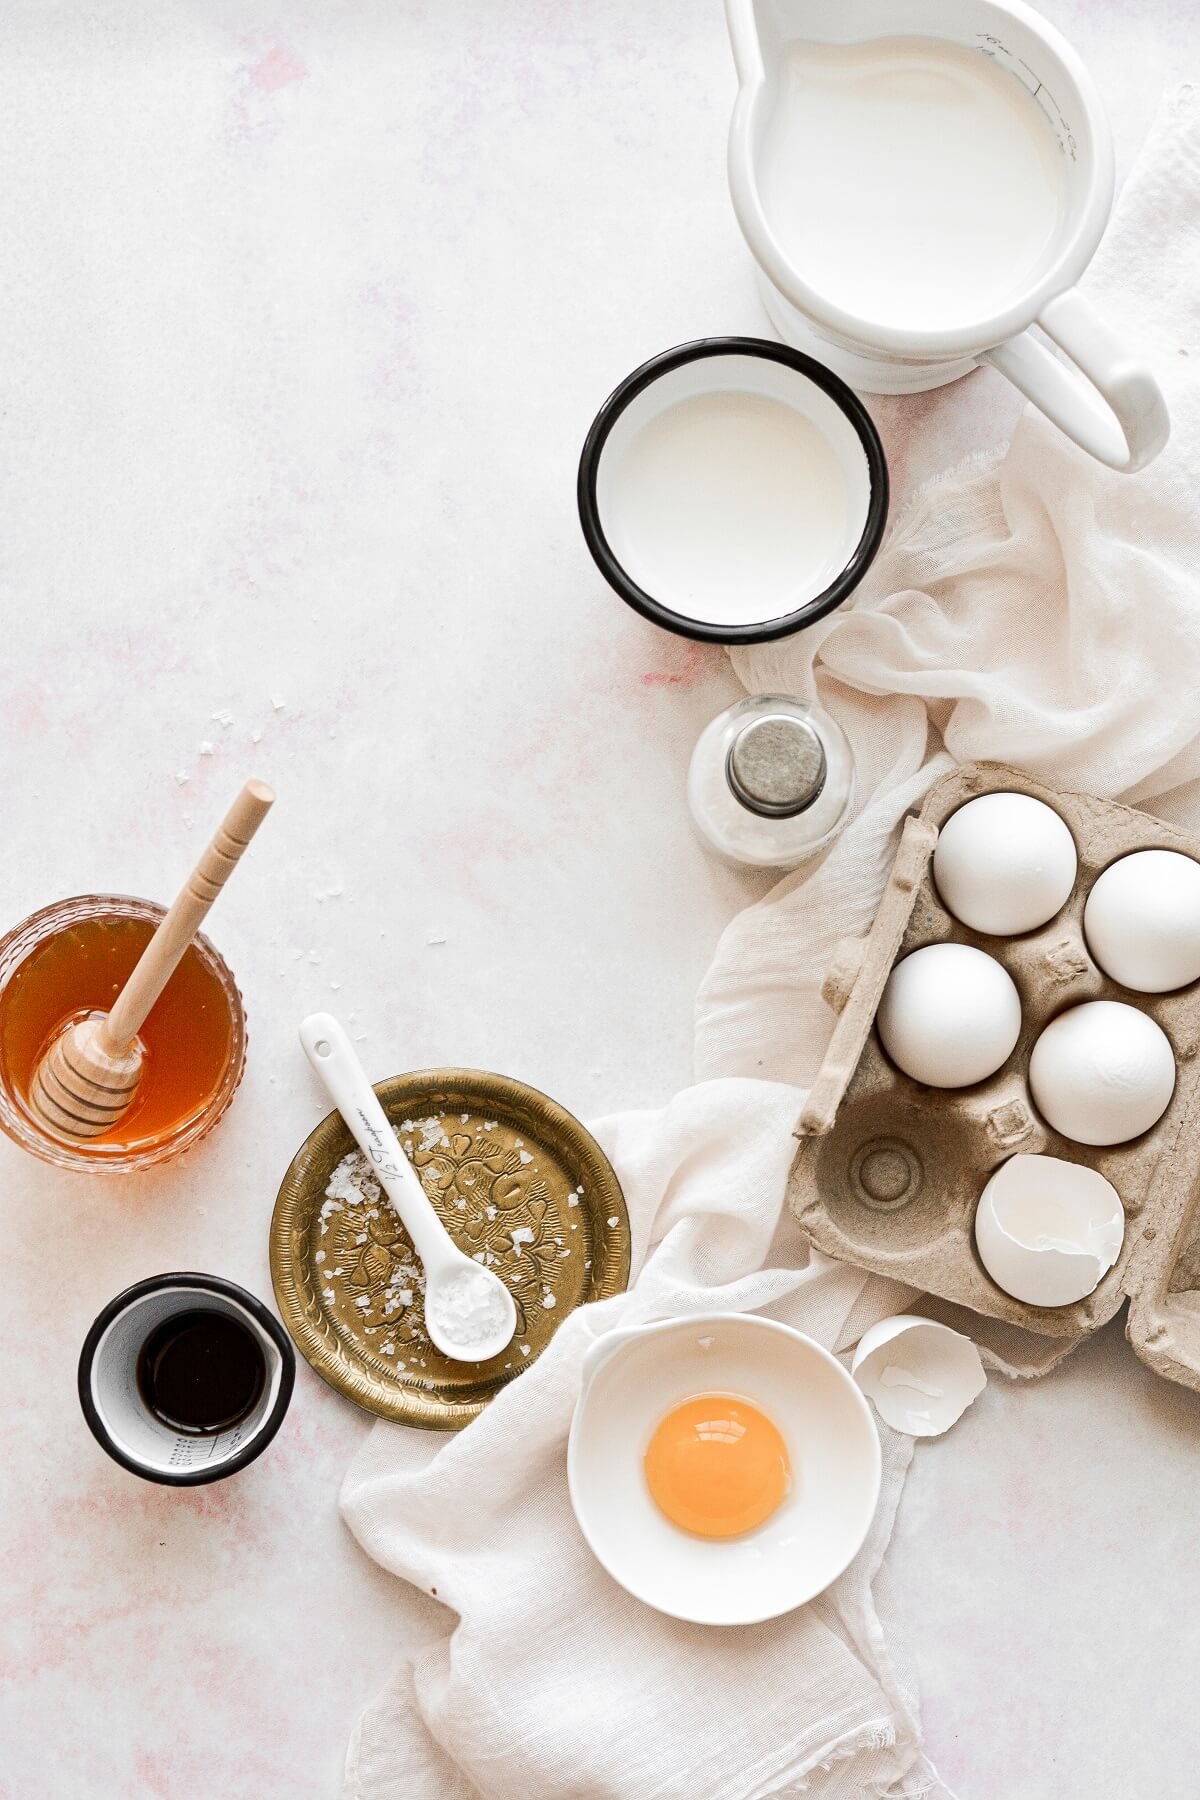 Ingredients for salted honey ice cream arranged in an overhead shot.